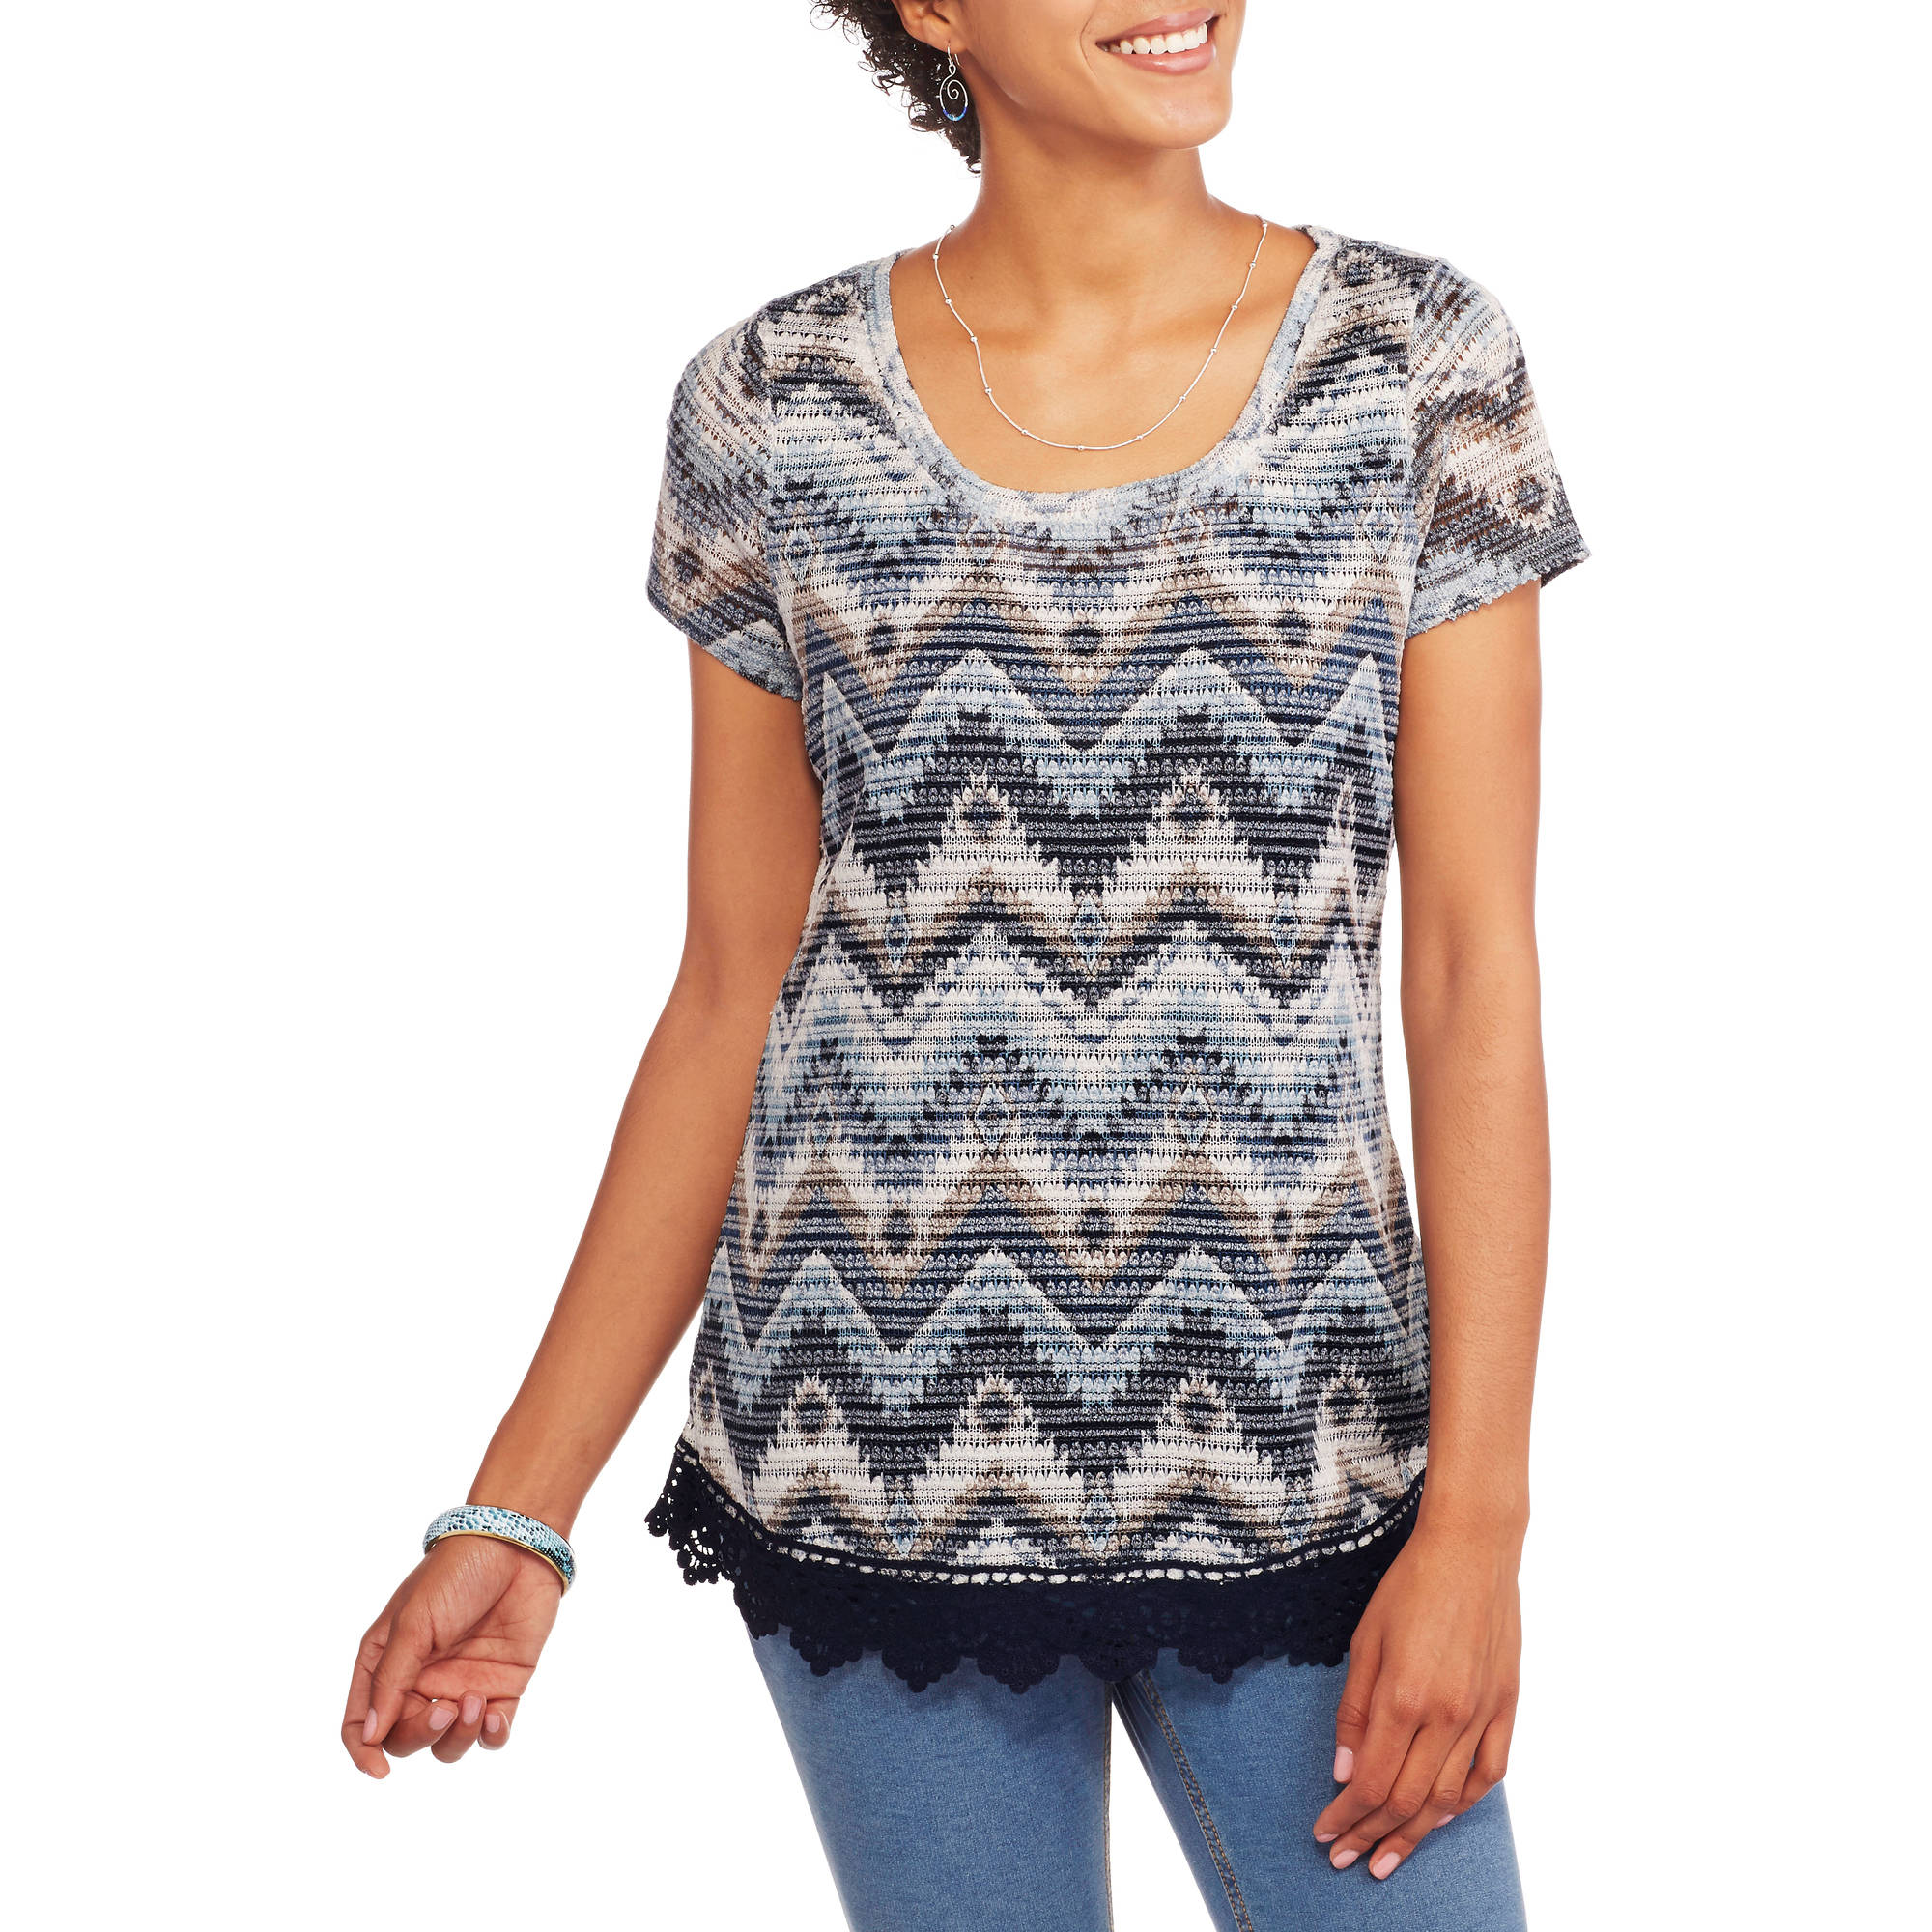 Image of Absolutely Famous Women's Textured 2fer Top with Crochet Trim